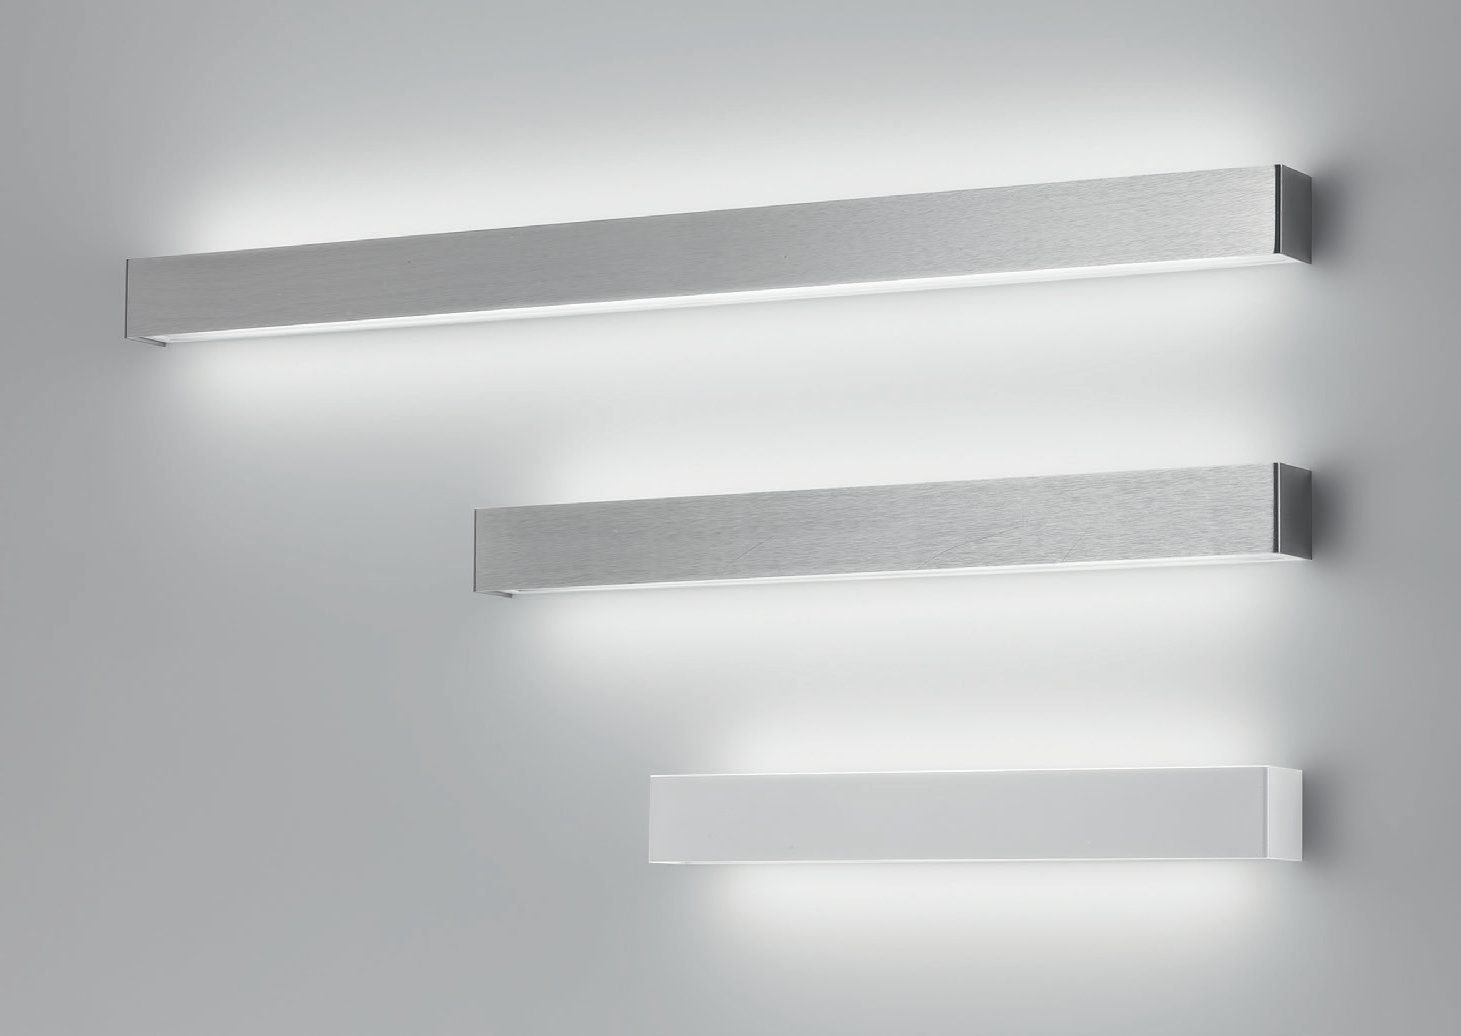 Led Direct Indirect Light Wall Light Zen By Olev By Clm Illuminazione Lampen Licht